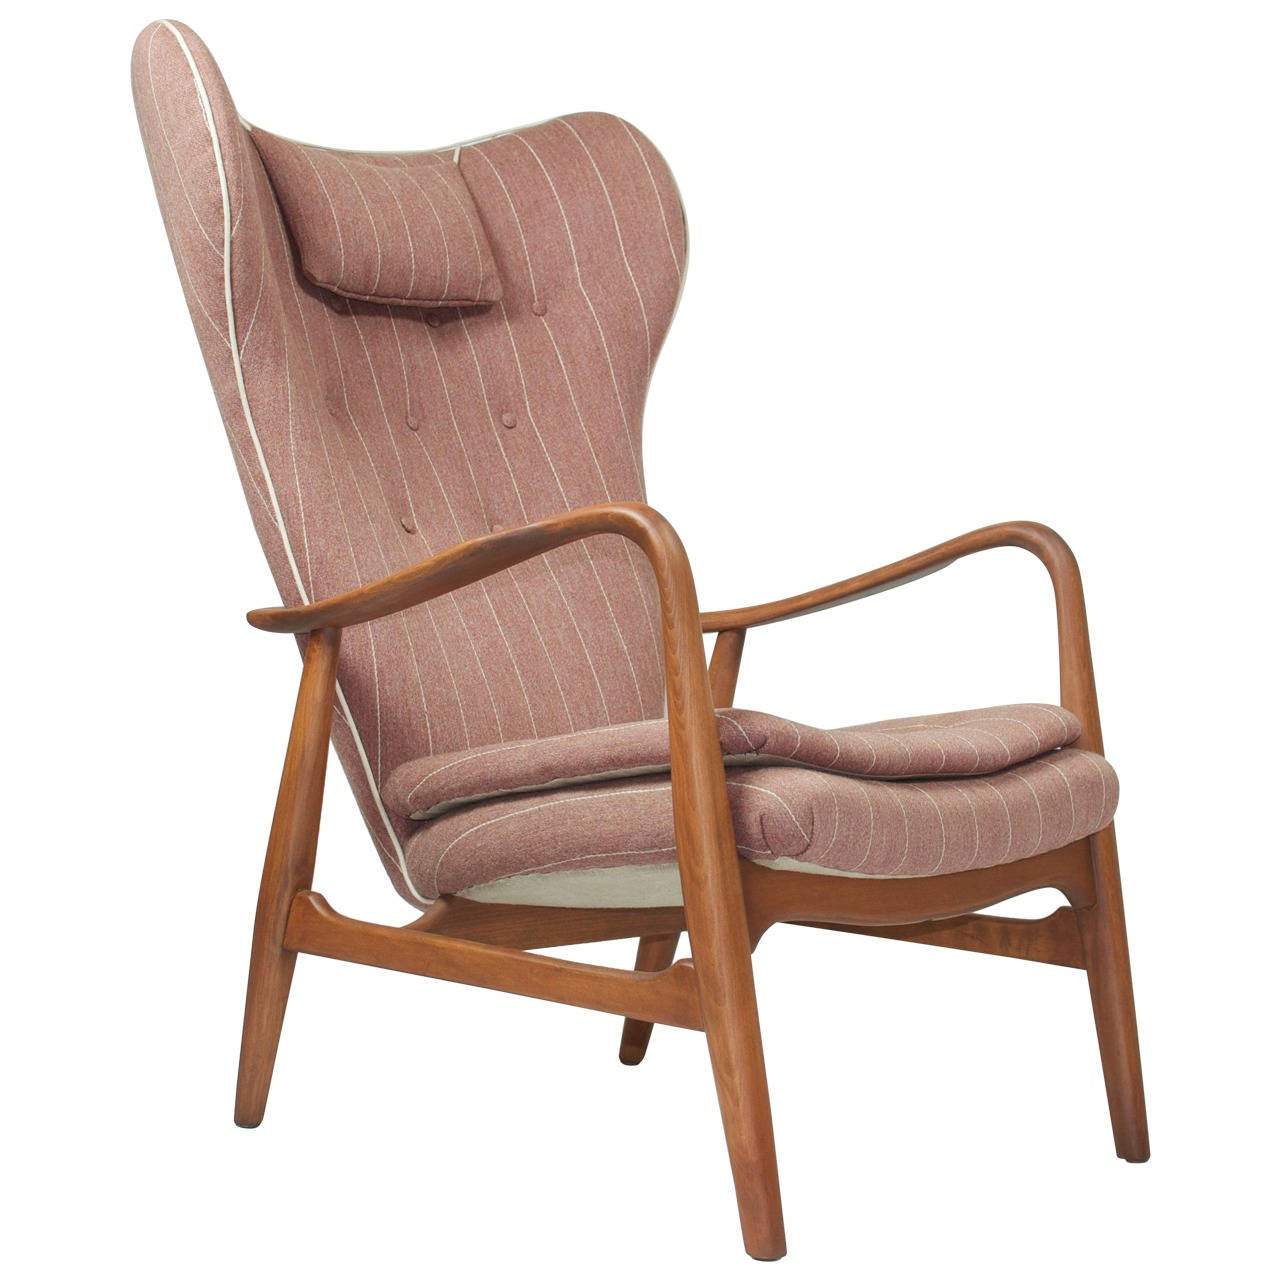 Madsen And Schubell High Back Danish Lounge Chair For Sale